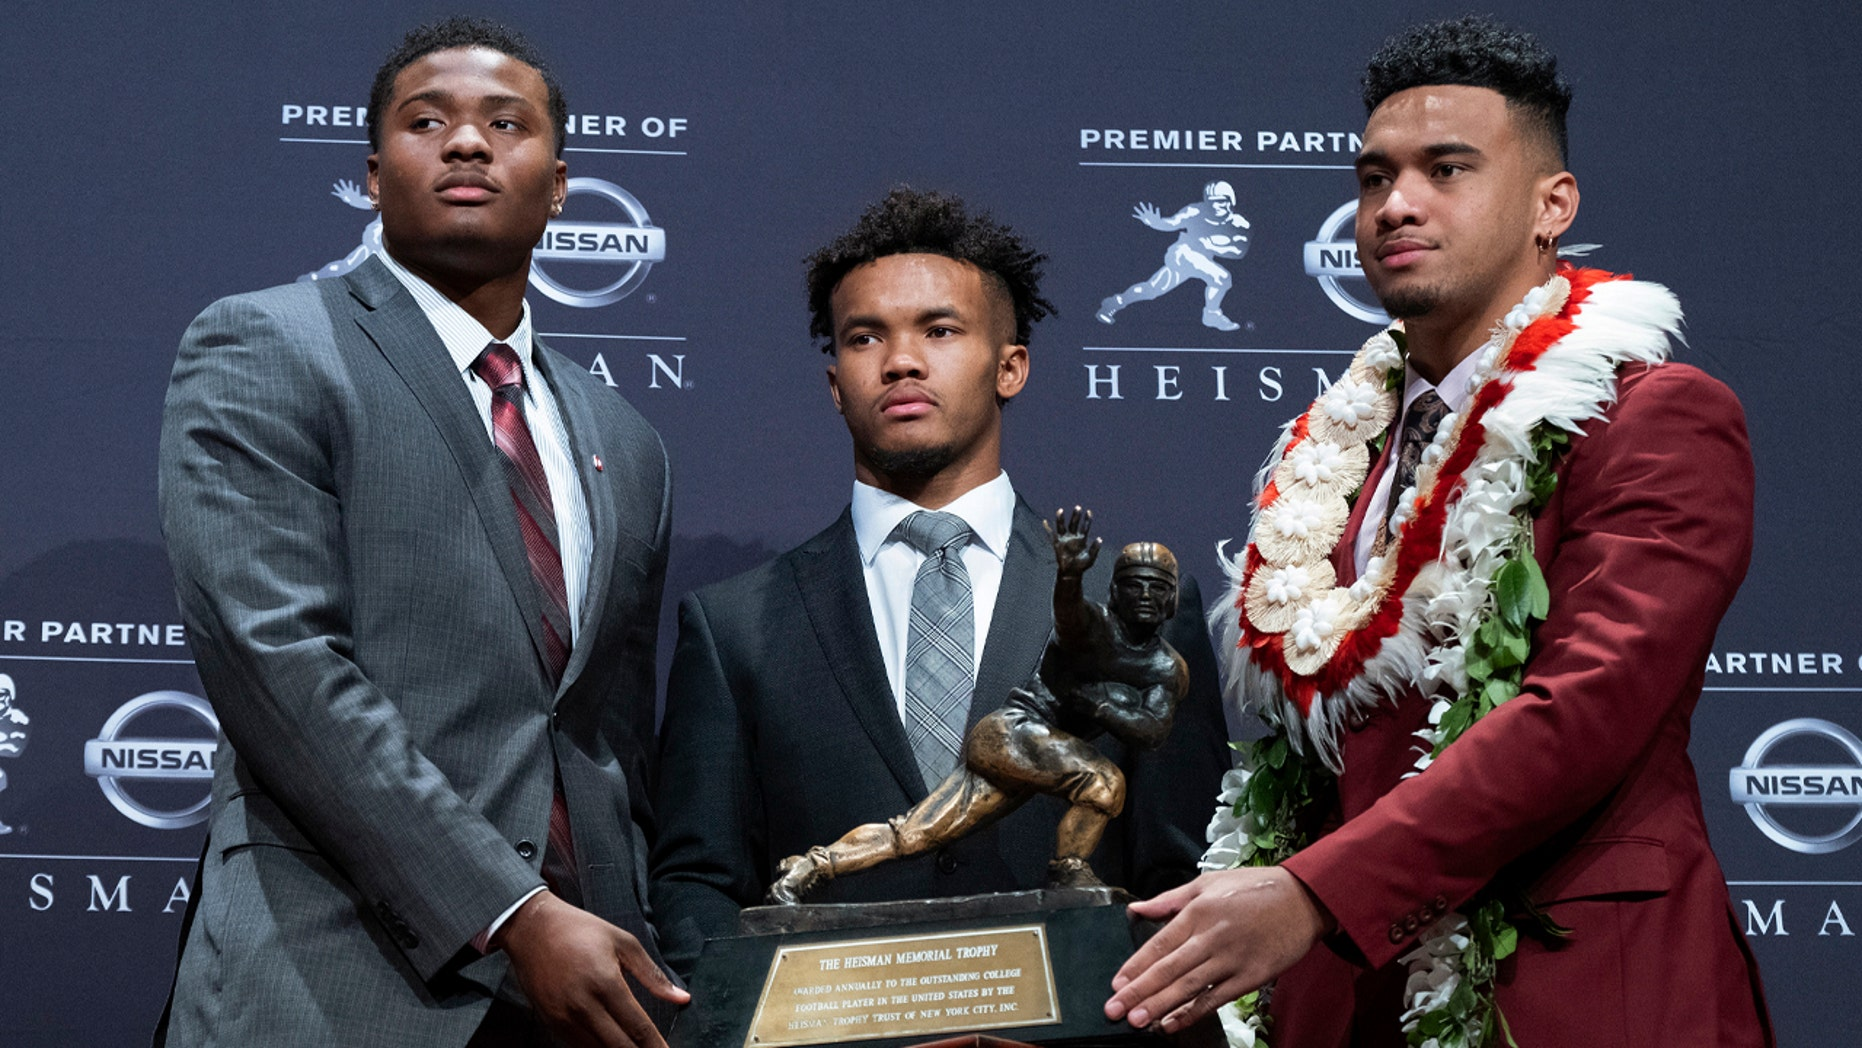 Heisman Trophy finalists, from left, Dwayne Haskins, from Ohio State; Kyler Murray, from Oklahoma; and Tua Tagovailoa, from Alabama, pose with the trophy during a media event Saturday, Dec. 8, 2018, in New York. (AP Photo/Craig Ruttle)